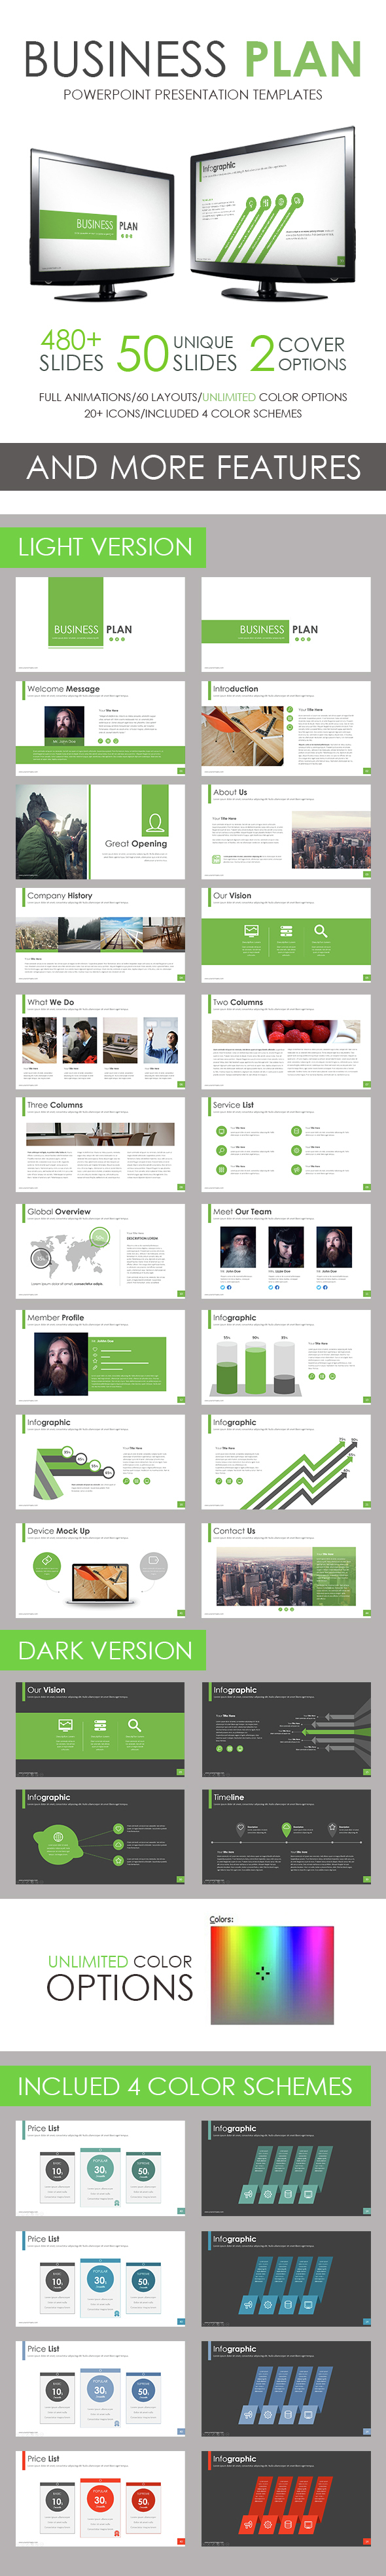 Business Plan PowerPoint Template - Business PowerPoint Templates